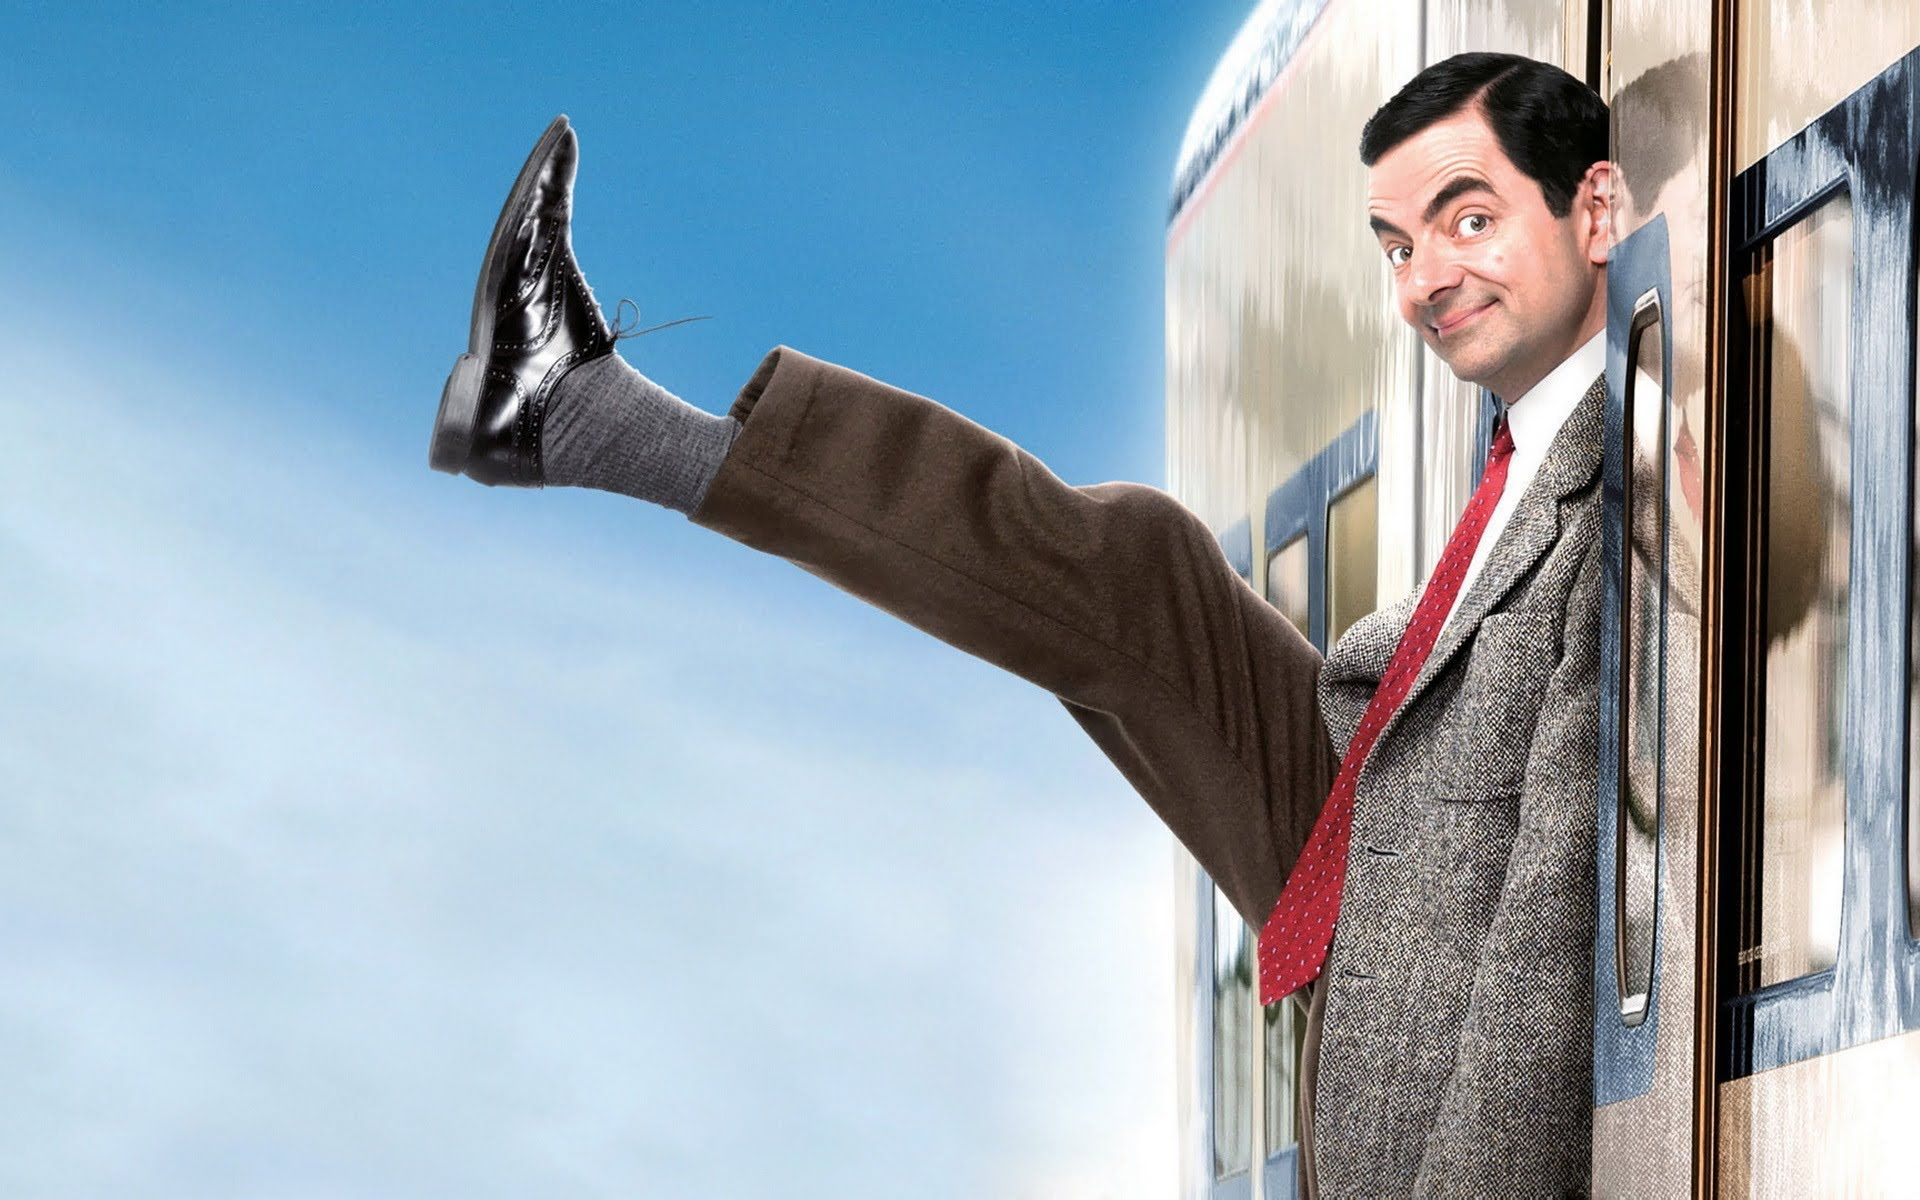 Mr bean hd images get free top quality mr bean hd images for mr bean hd images get free top quality mr bean hd images for your desktop solutioingenieria Images